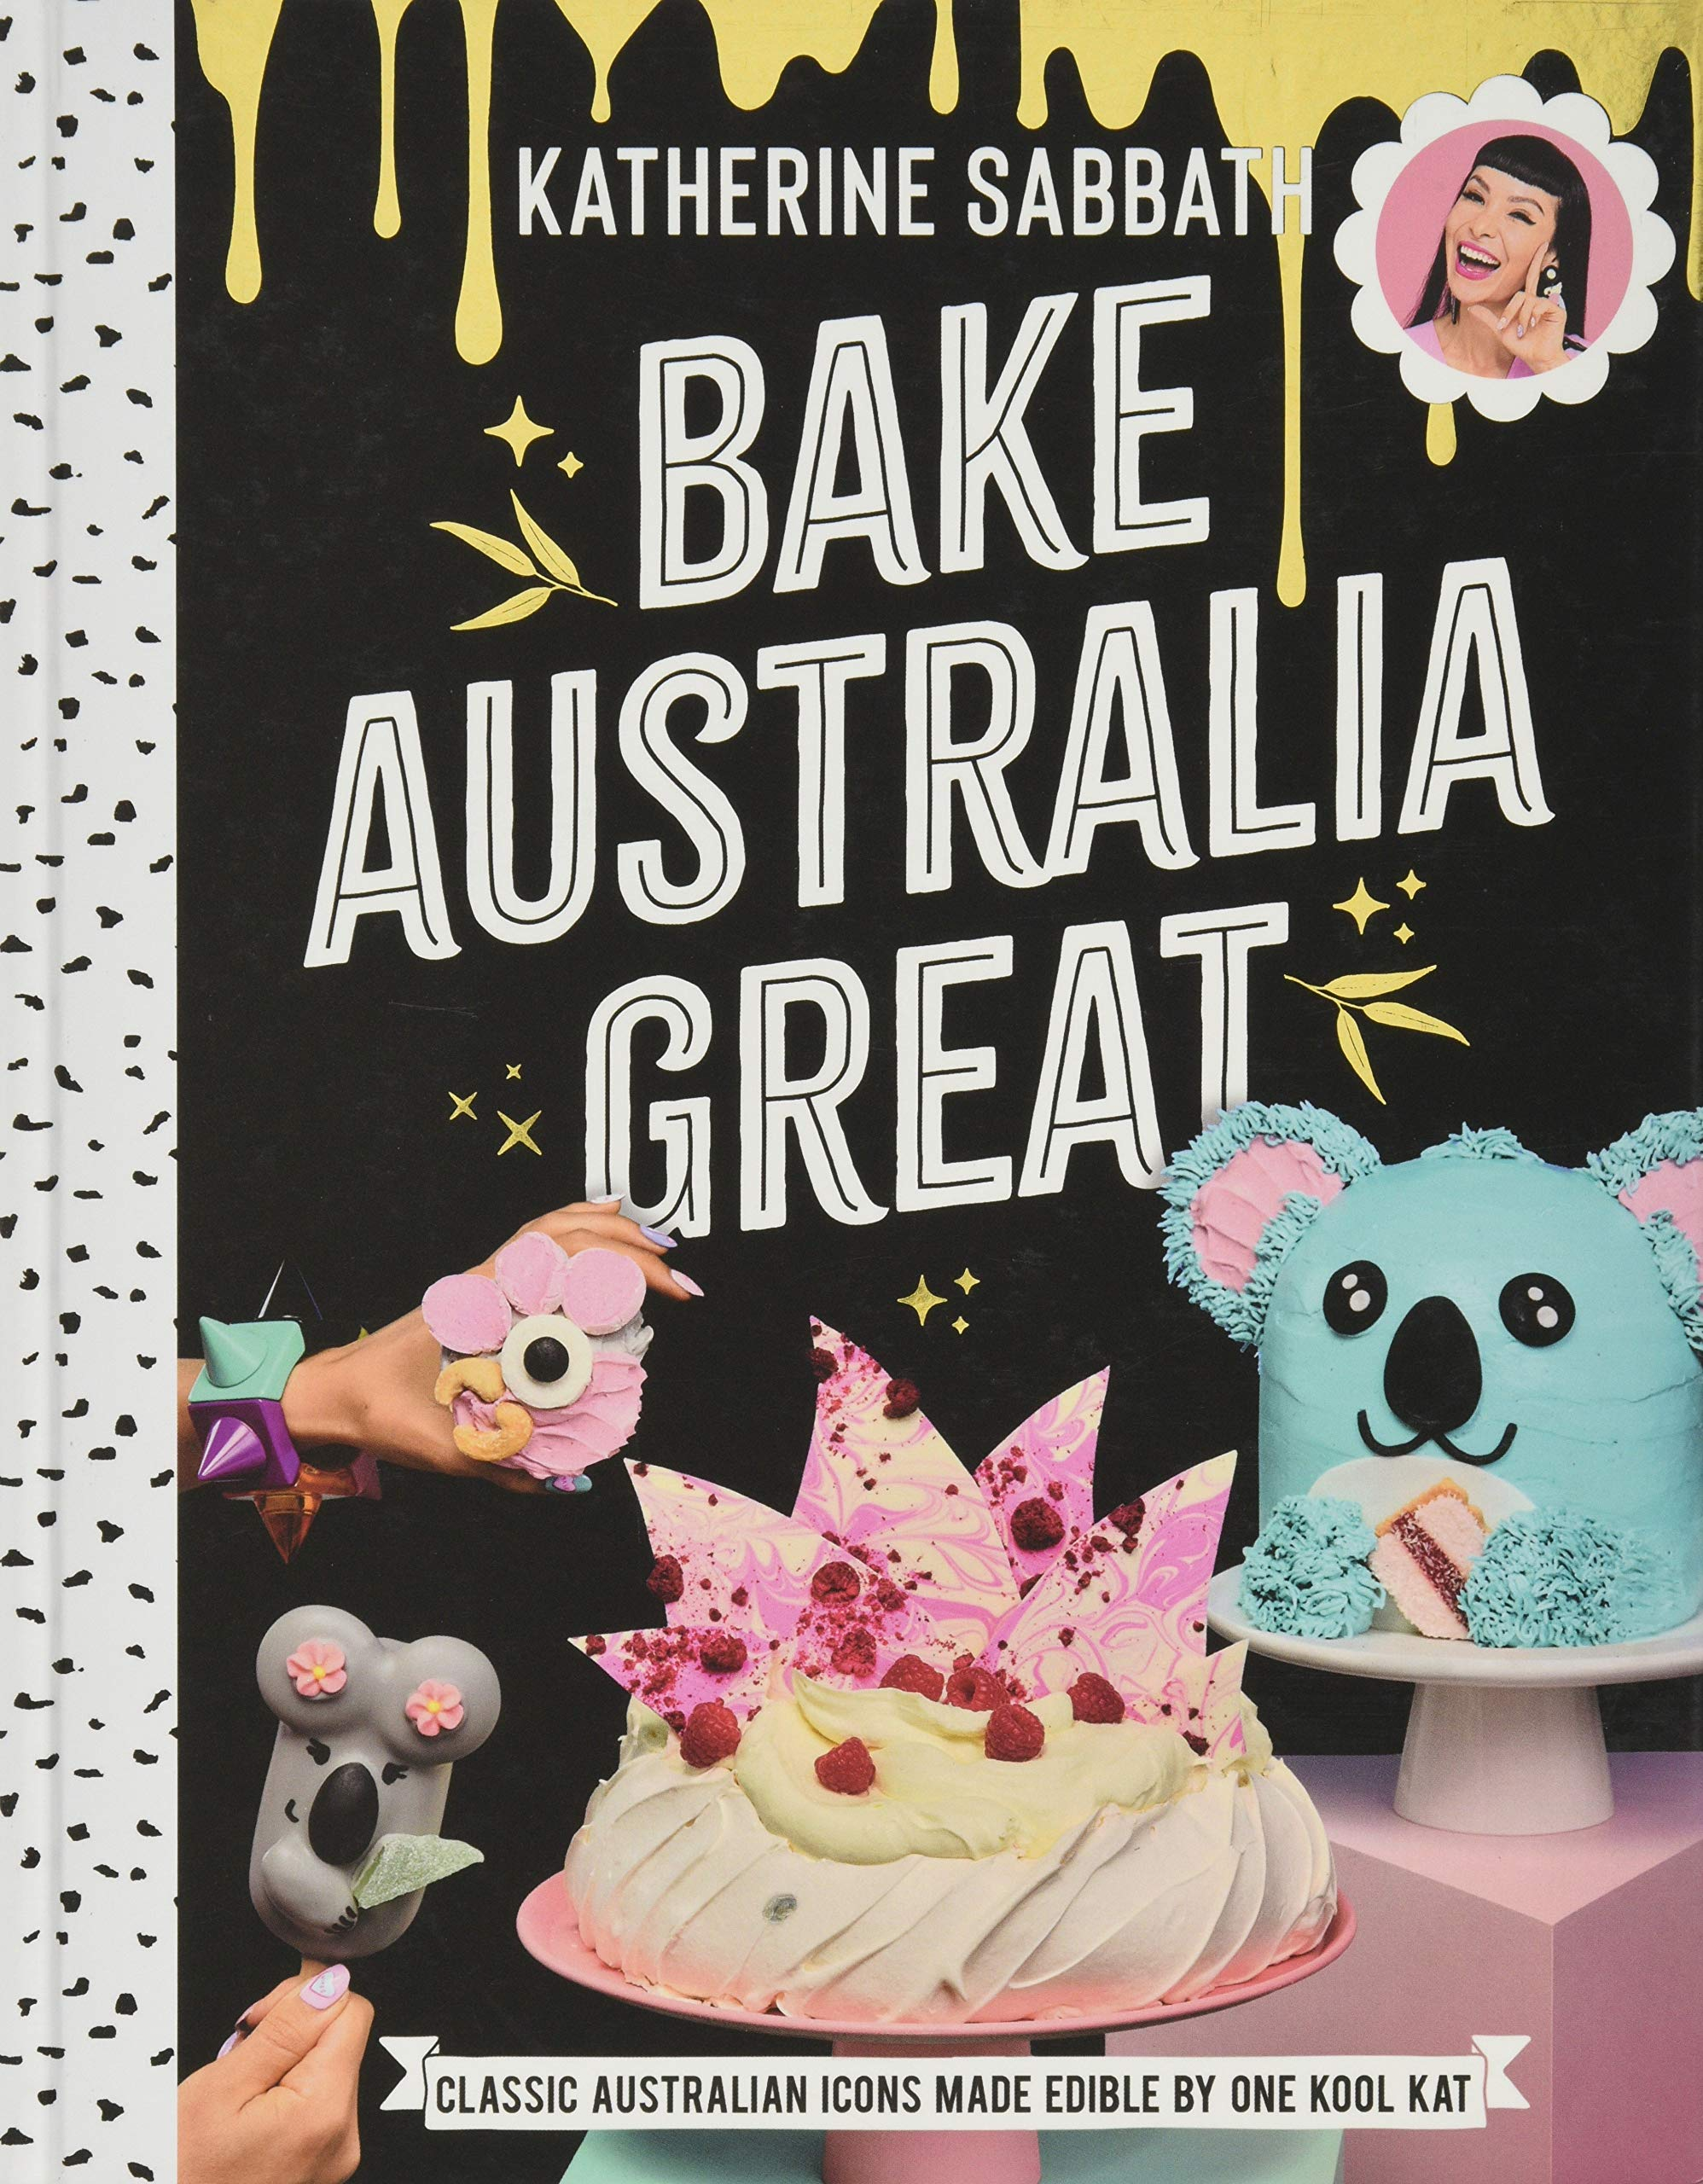 Image OfSabbath, K: Bake Australia Great: Classic Australia Made Edible By One Kool Kat